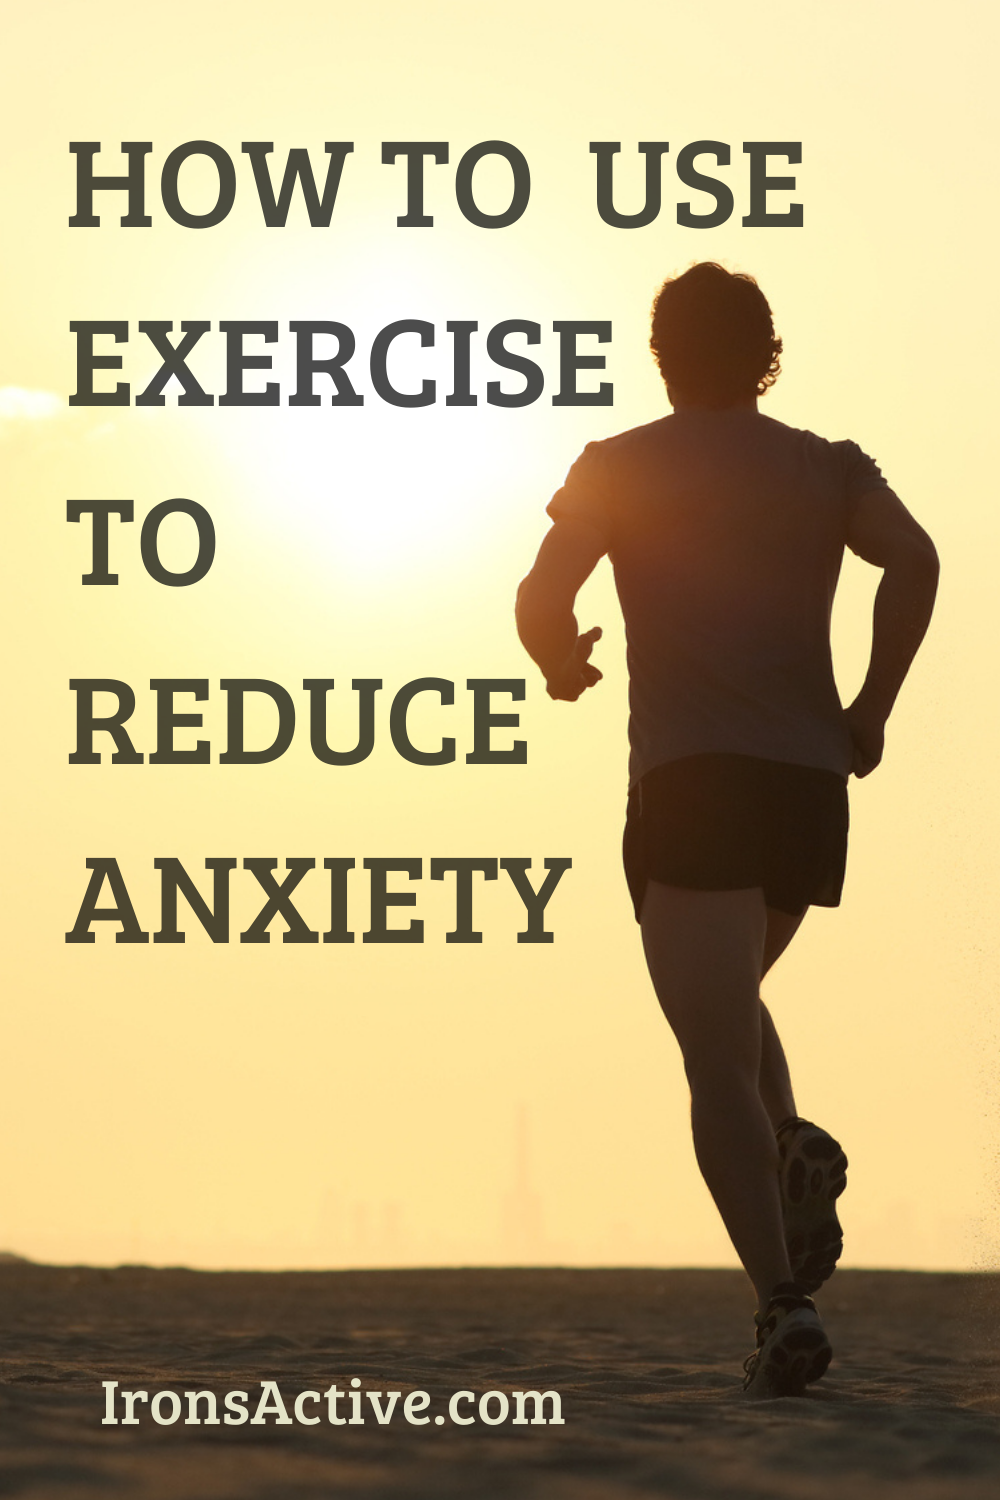 How to Use Exercise to Reduce Anxiety